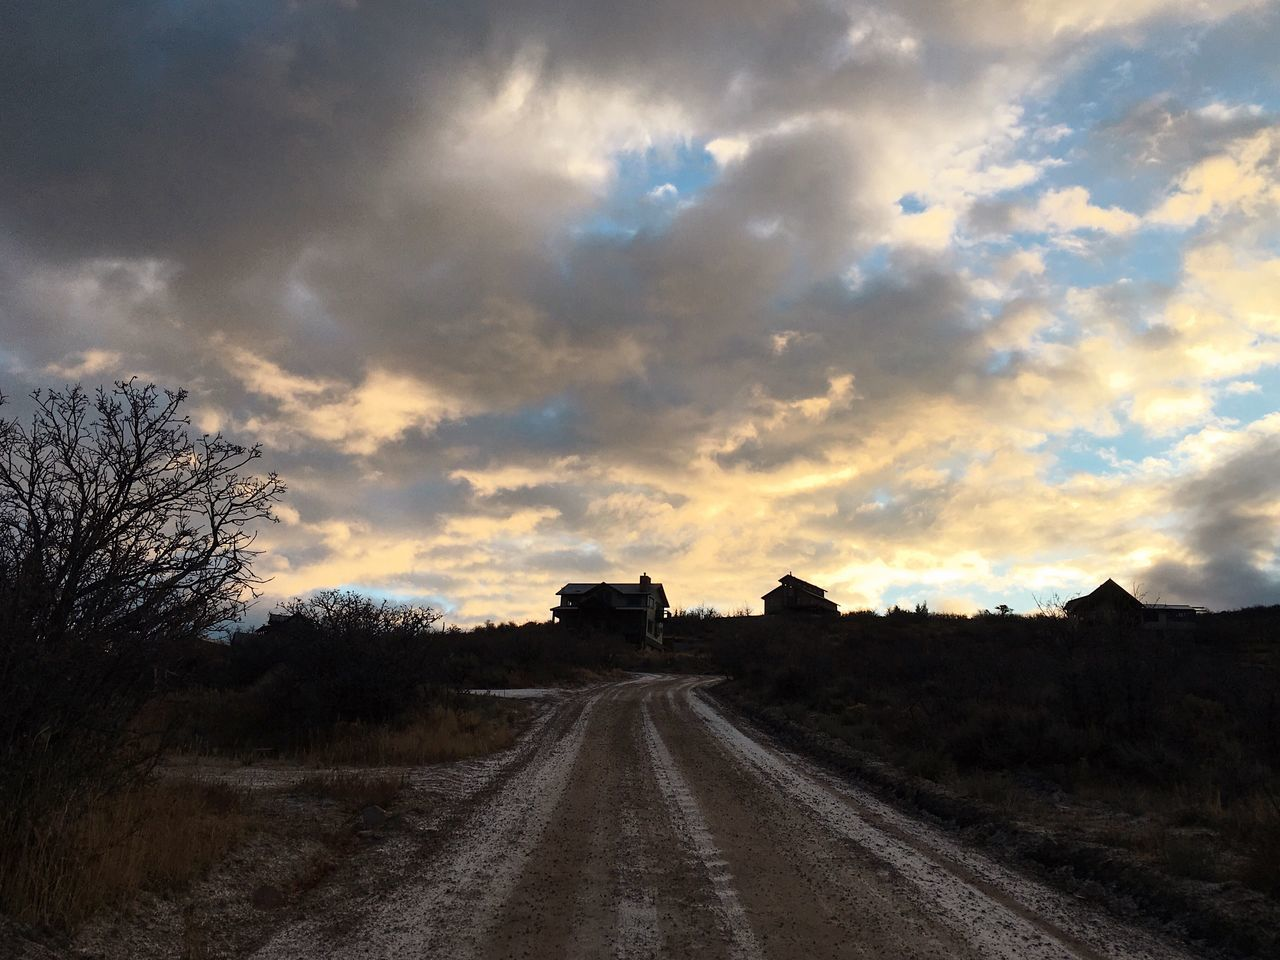 sky, cloud - sky, road, the way forward, direction, tree, plant, transportation, nature, no people, sunset, field, scenics - nature, landscape, land, dirt, dirt road, environment, beauty in nature, diminishing perspective, outdoors